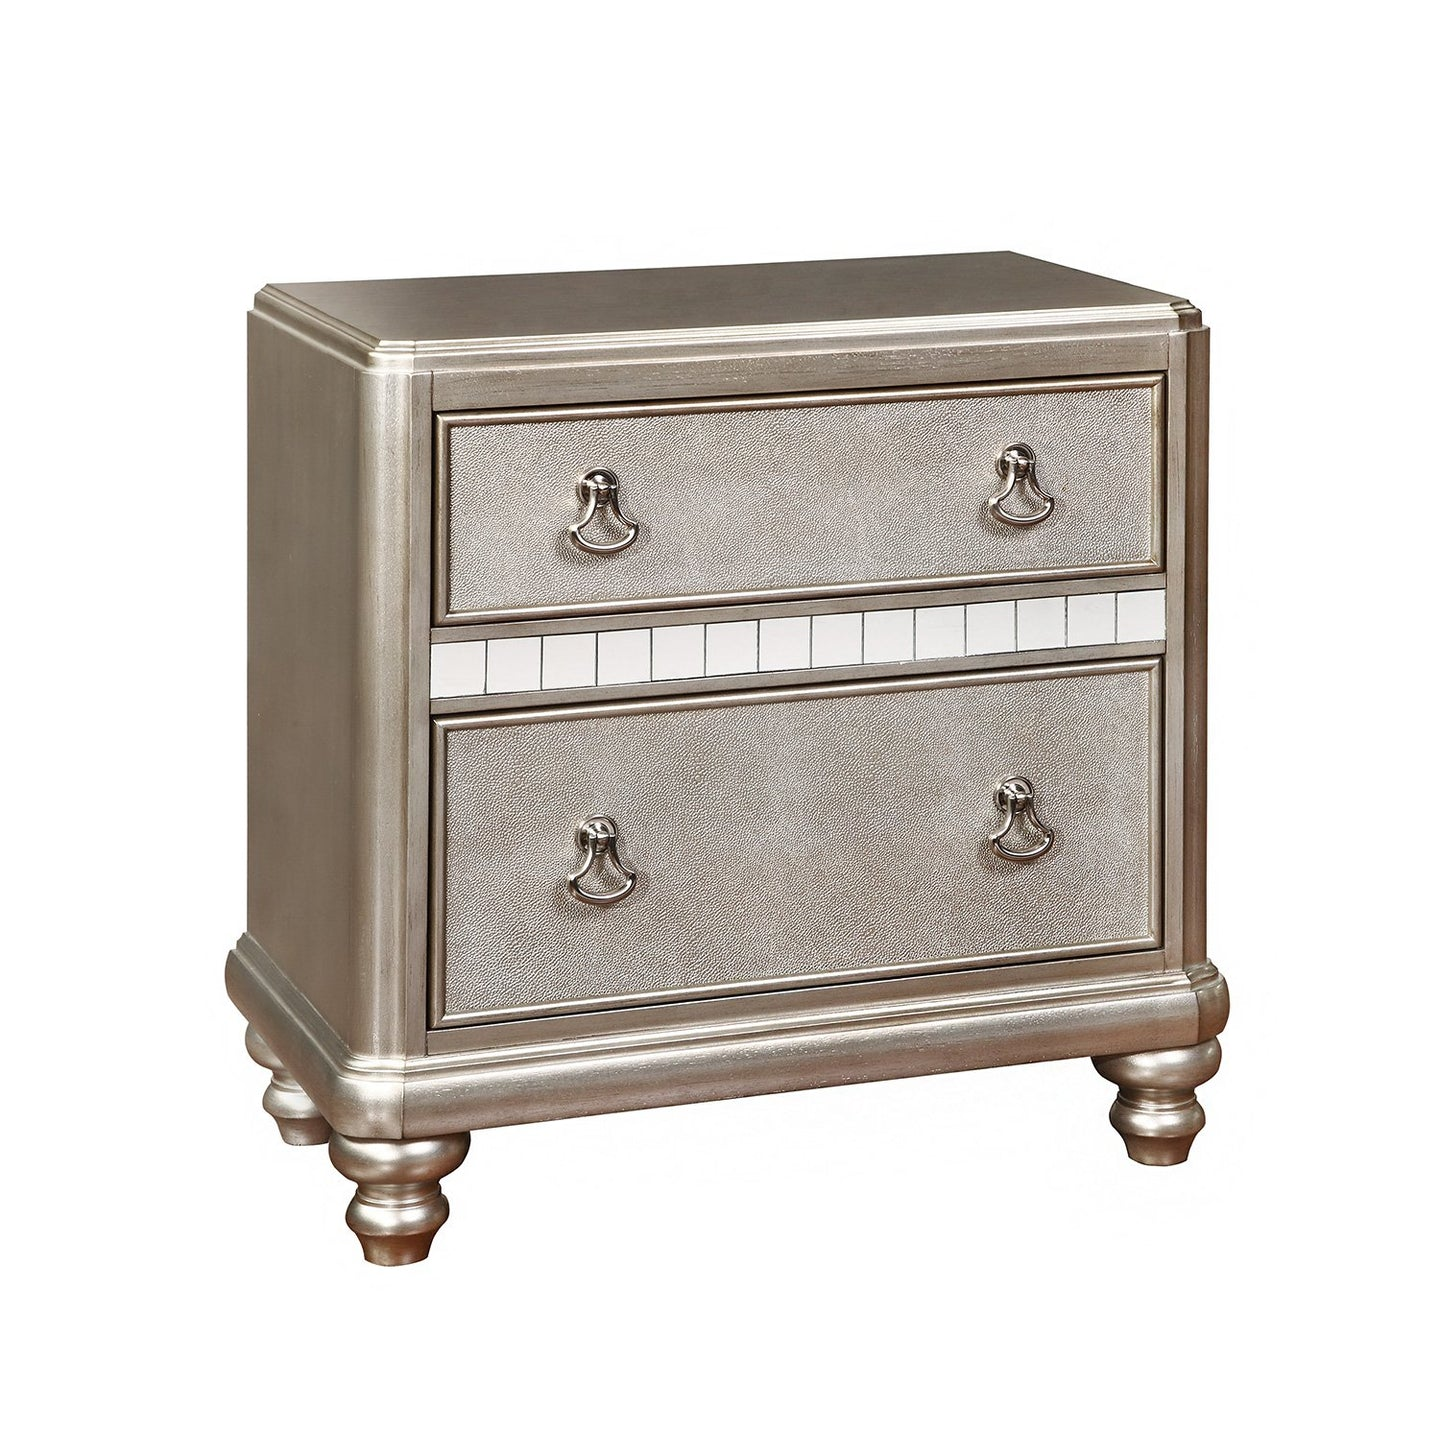 Bling Game Metallic Platinum Night Stand